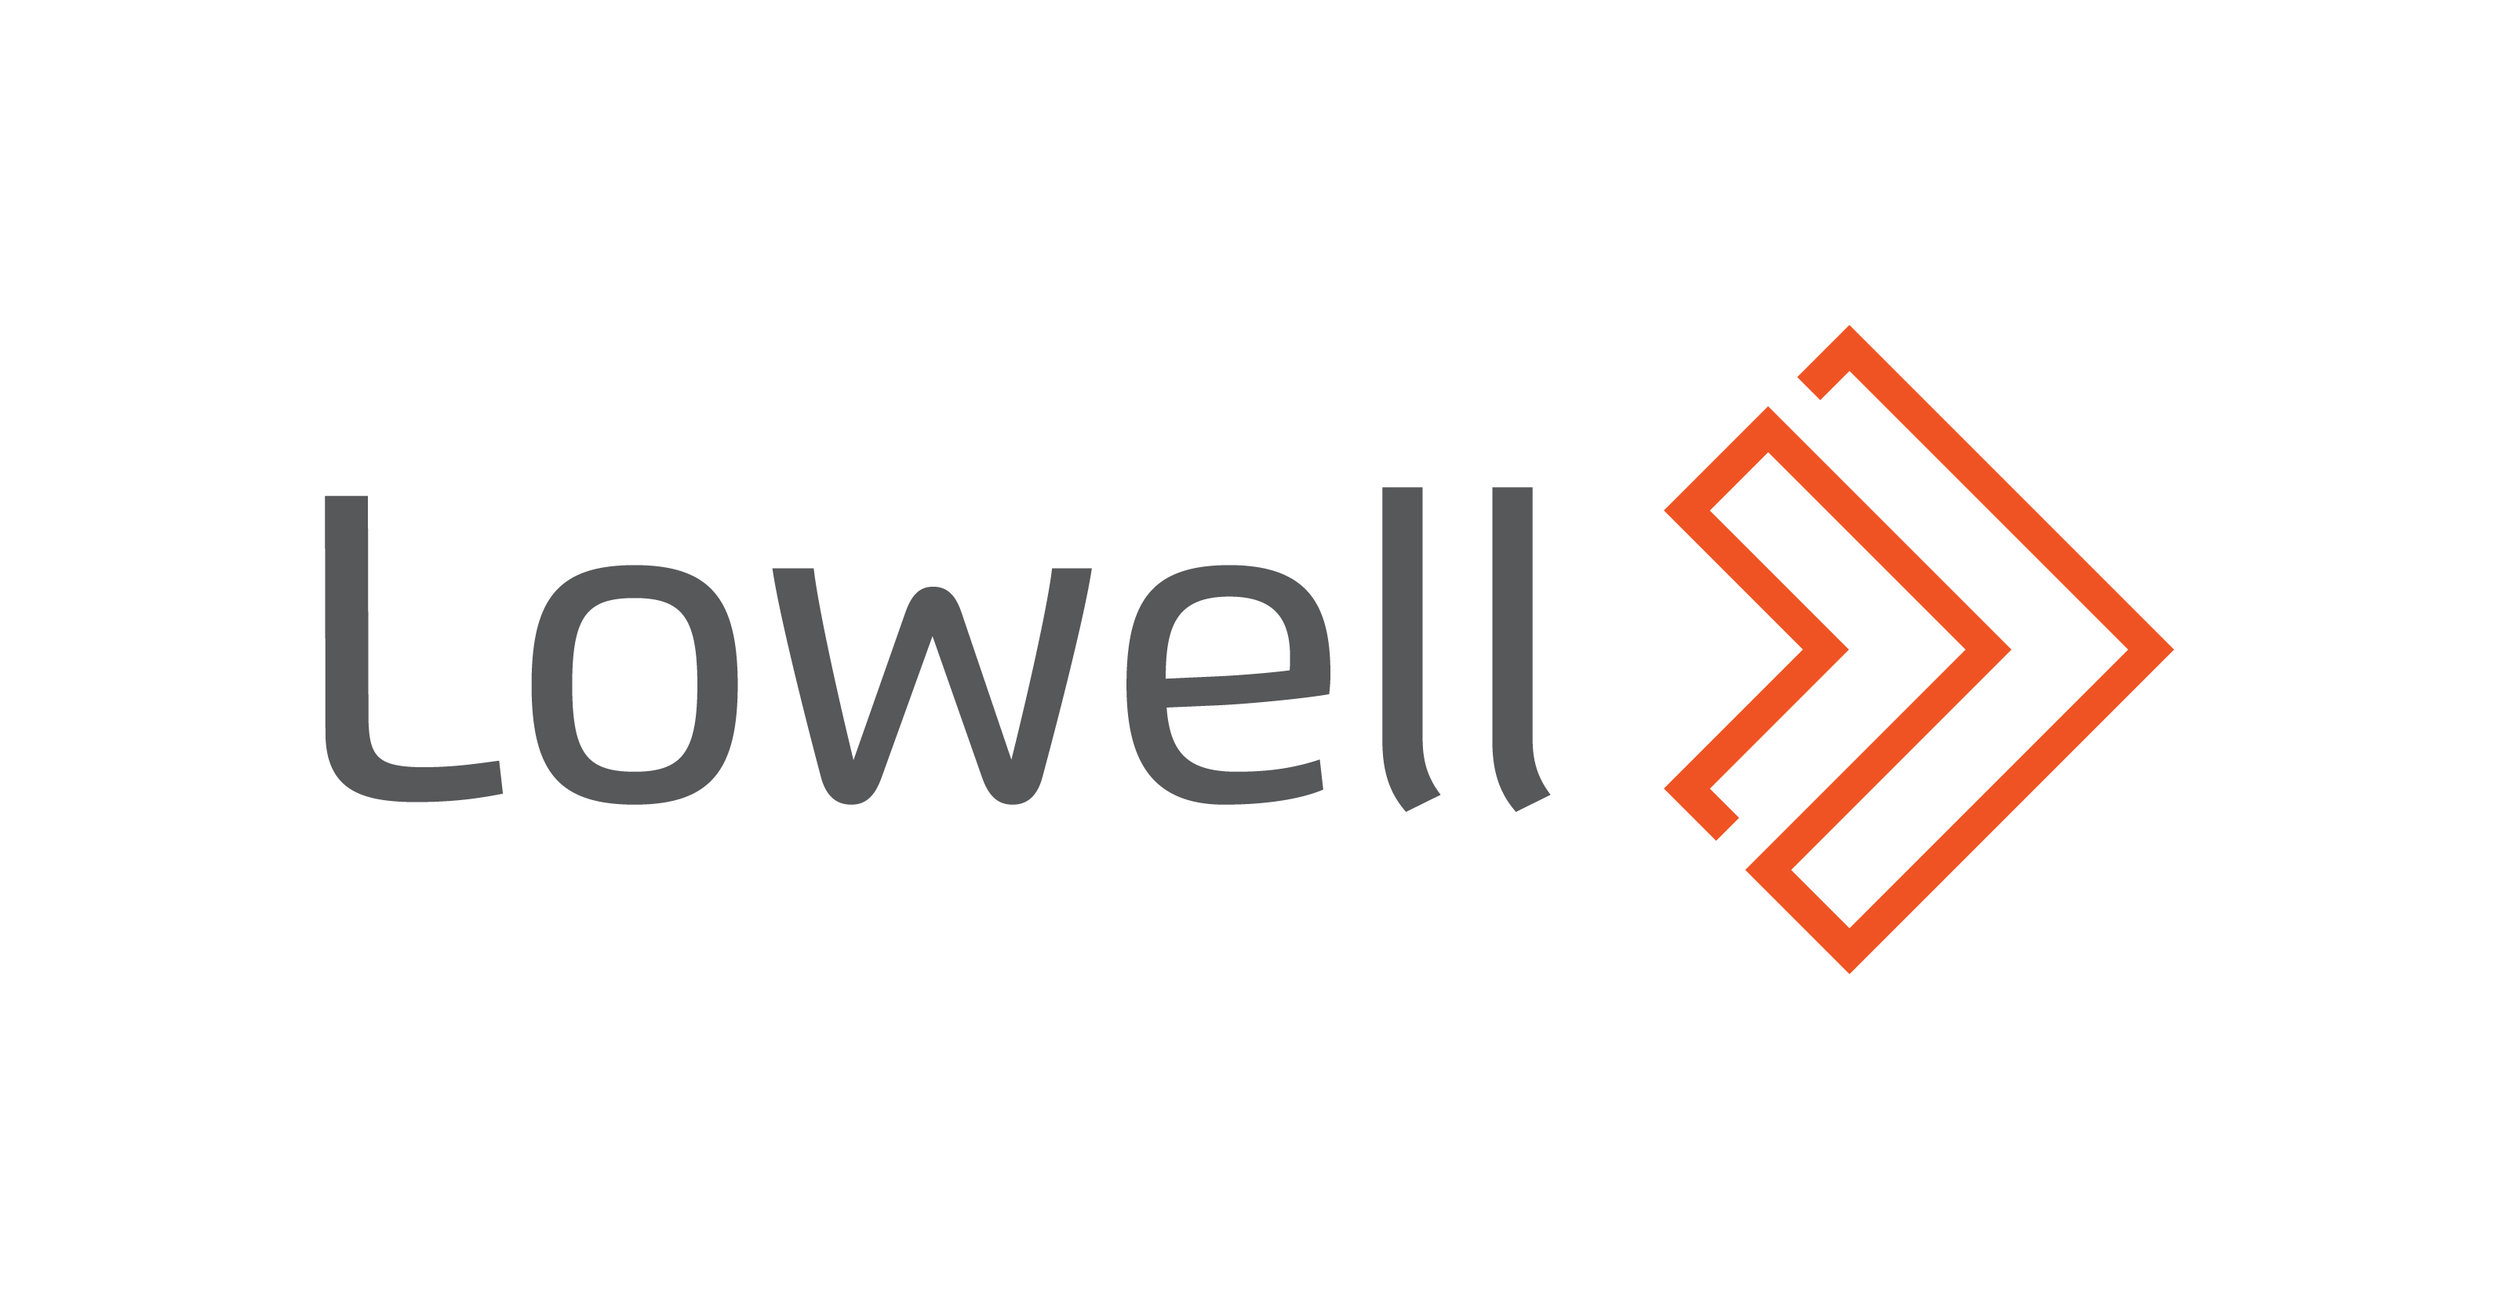 Lowell_Logo_Pantone_Colour_AW 300dpi.jpg